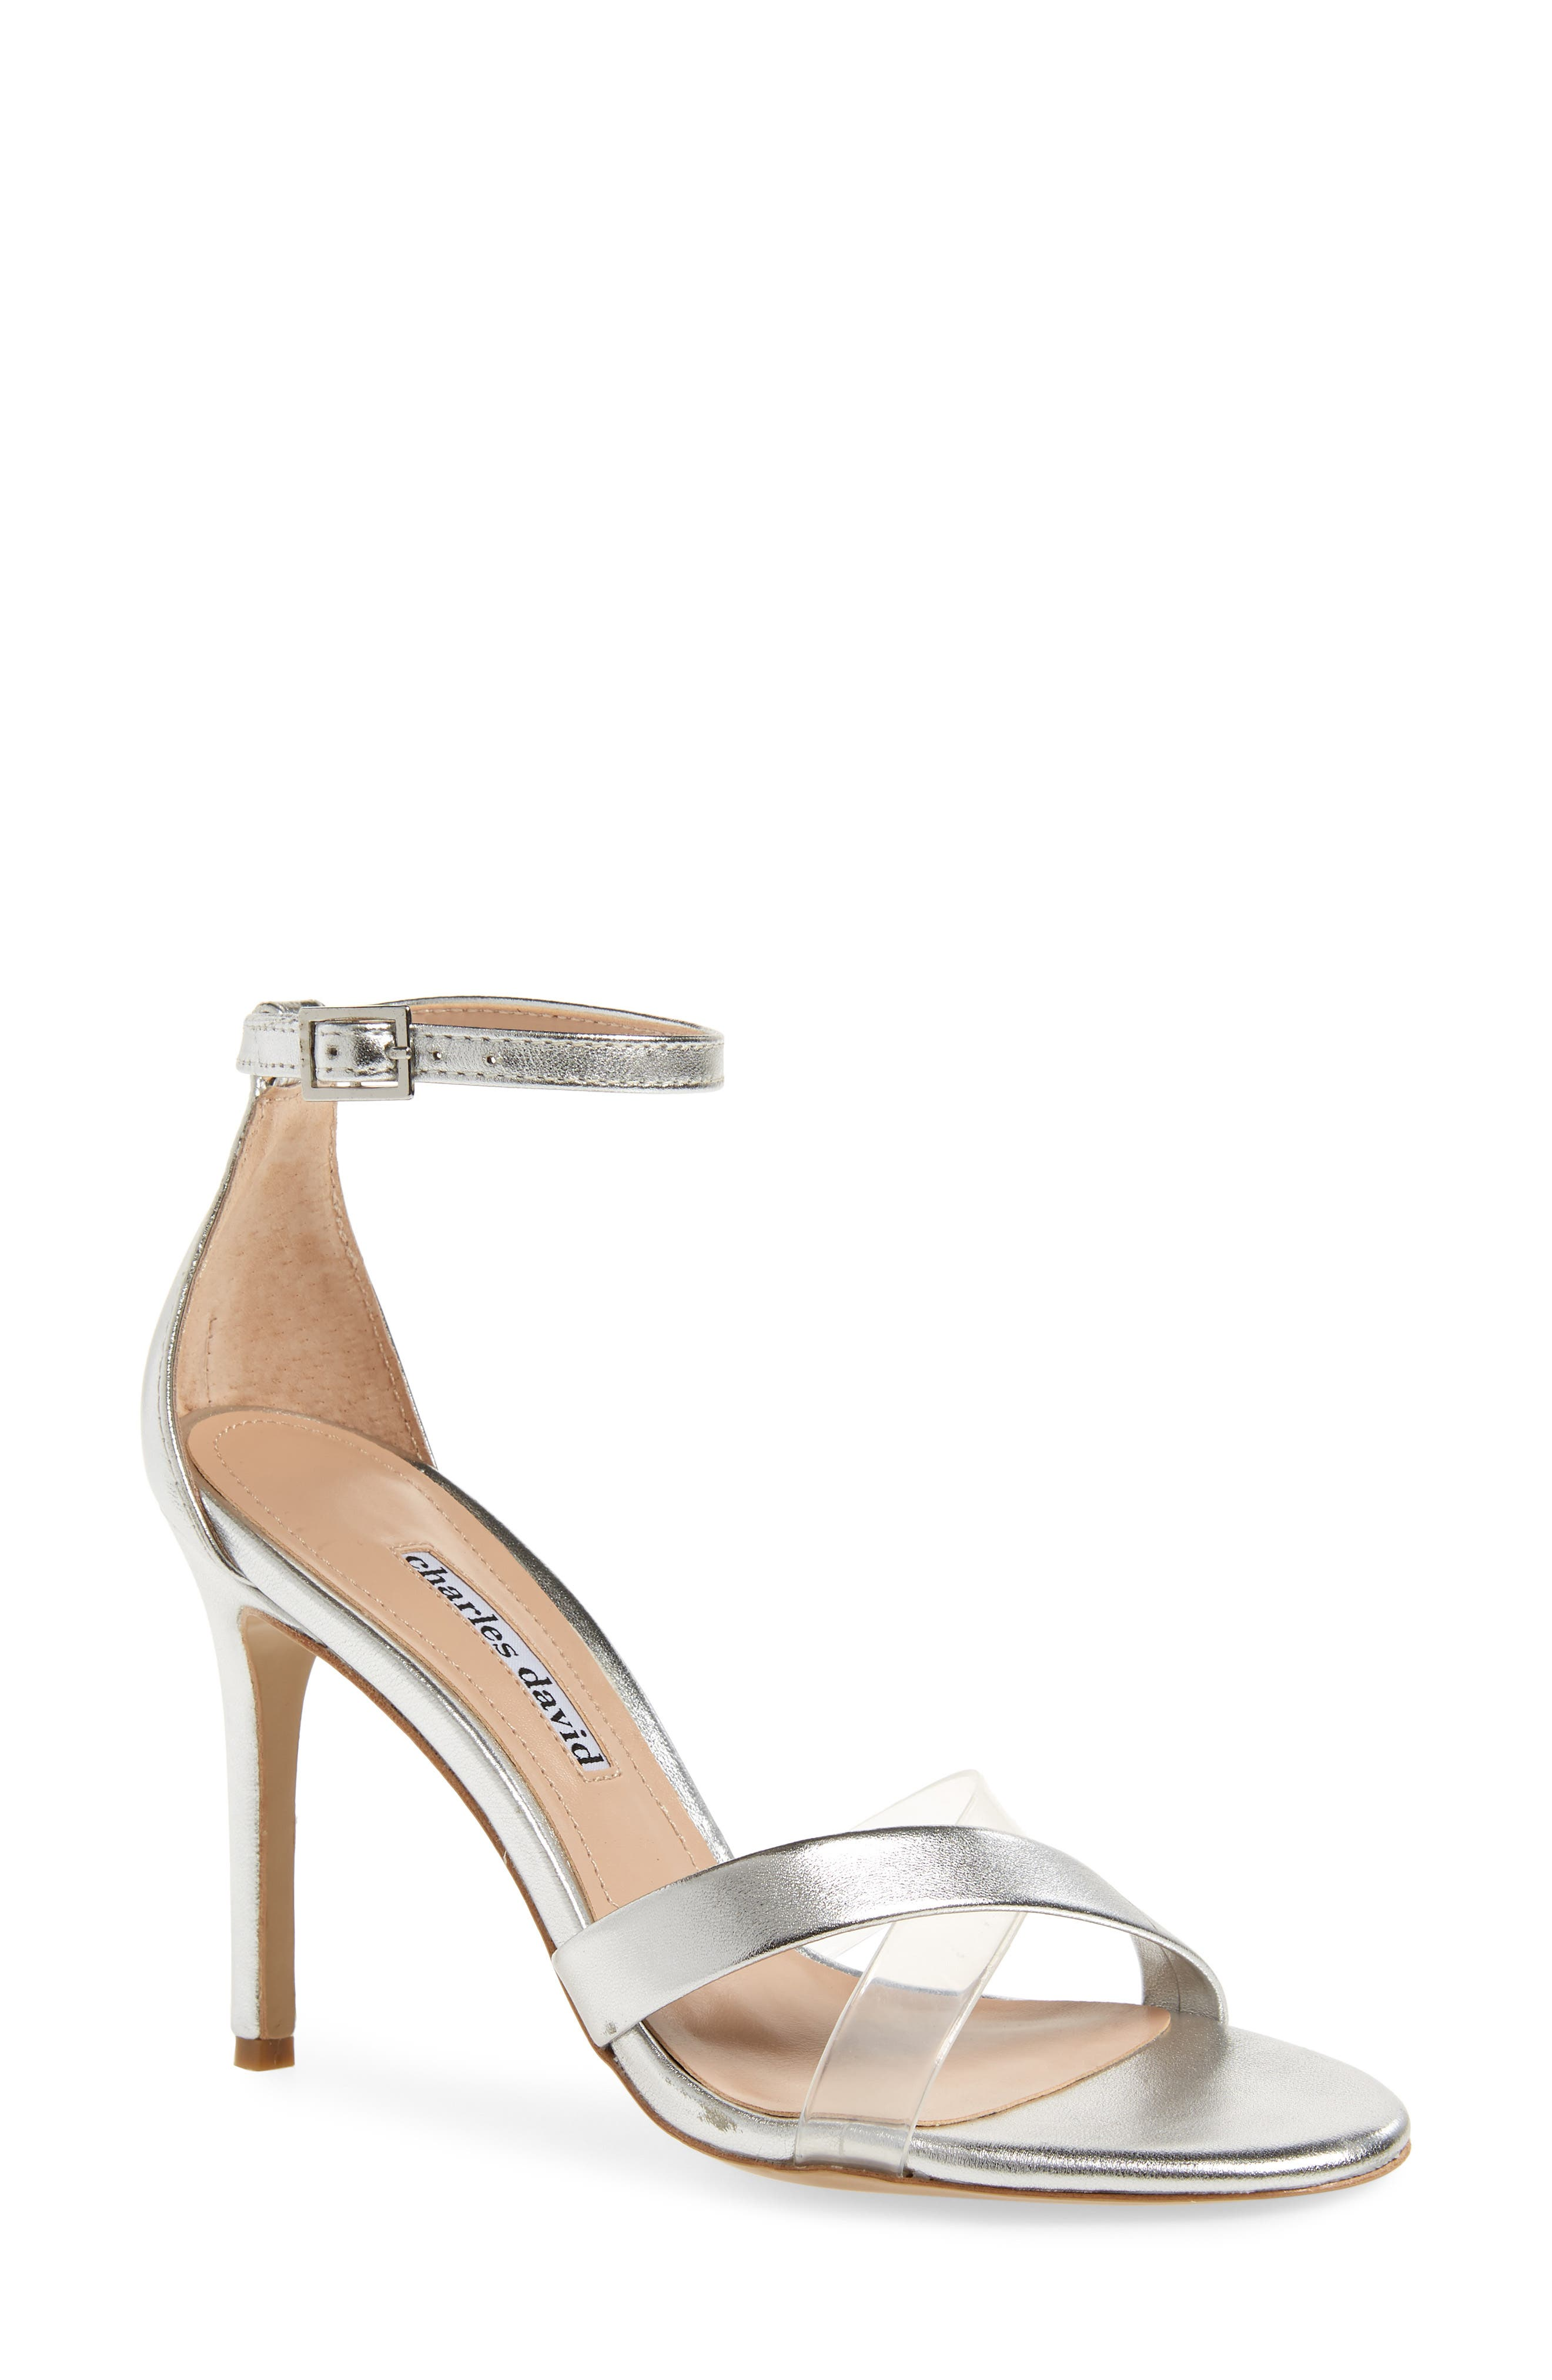 Charles David Courtney Sandal, Metallic